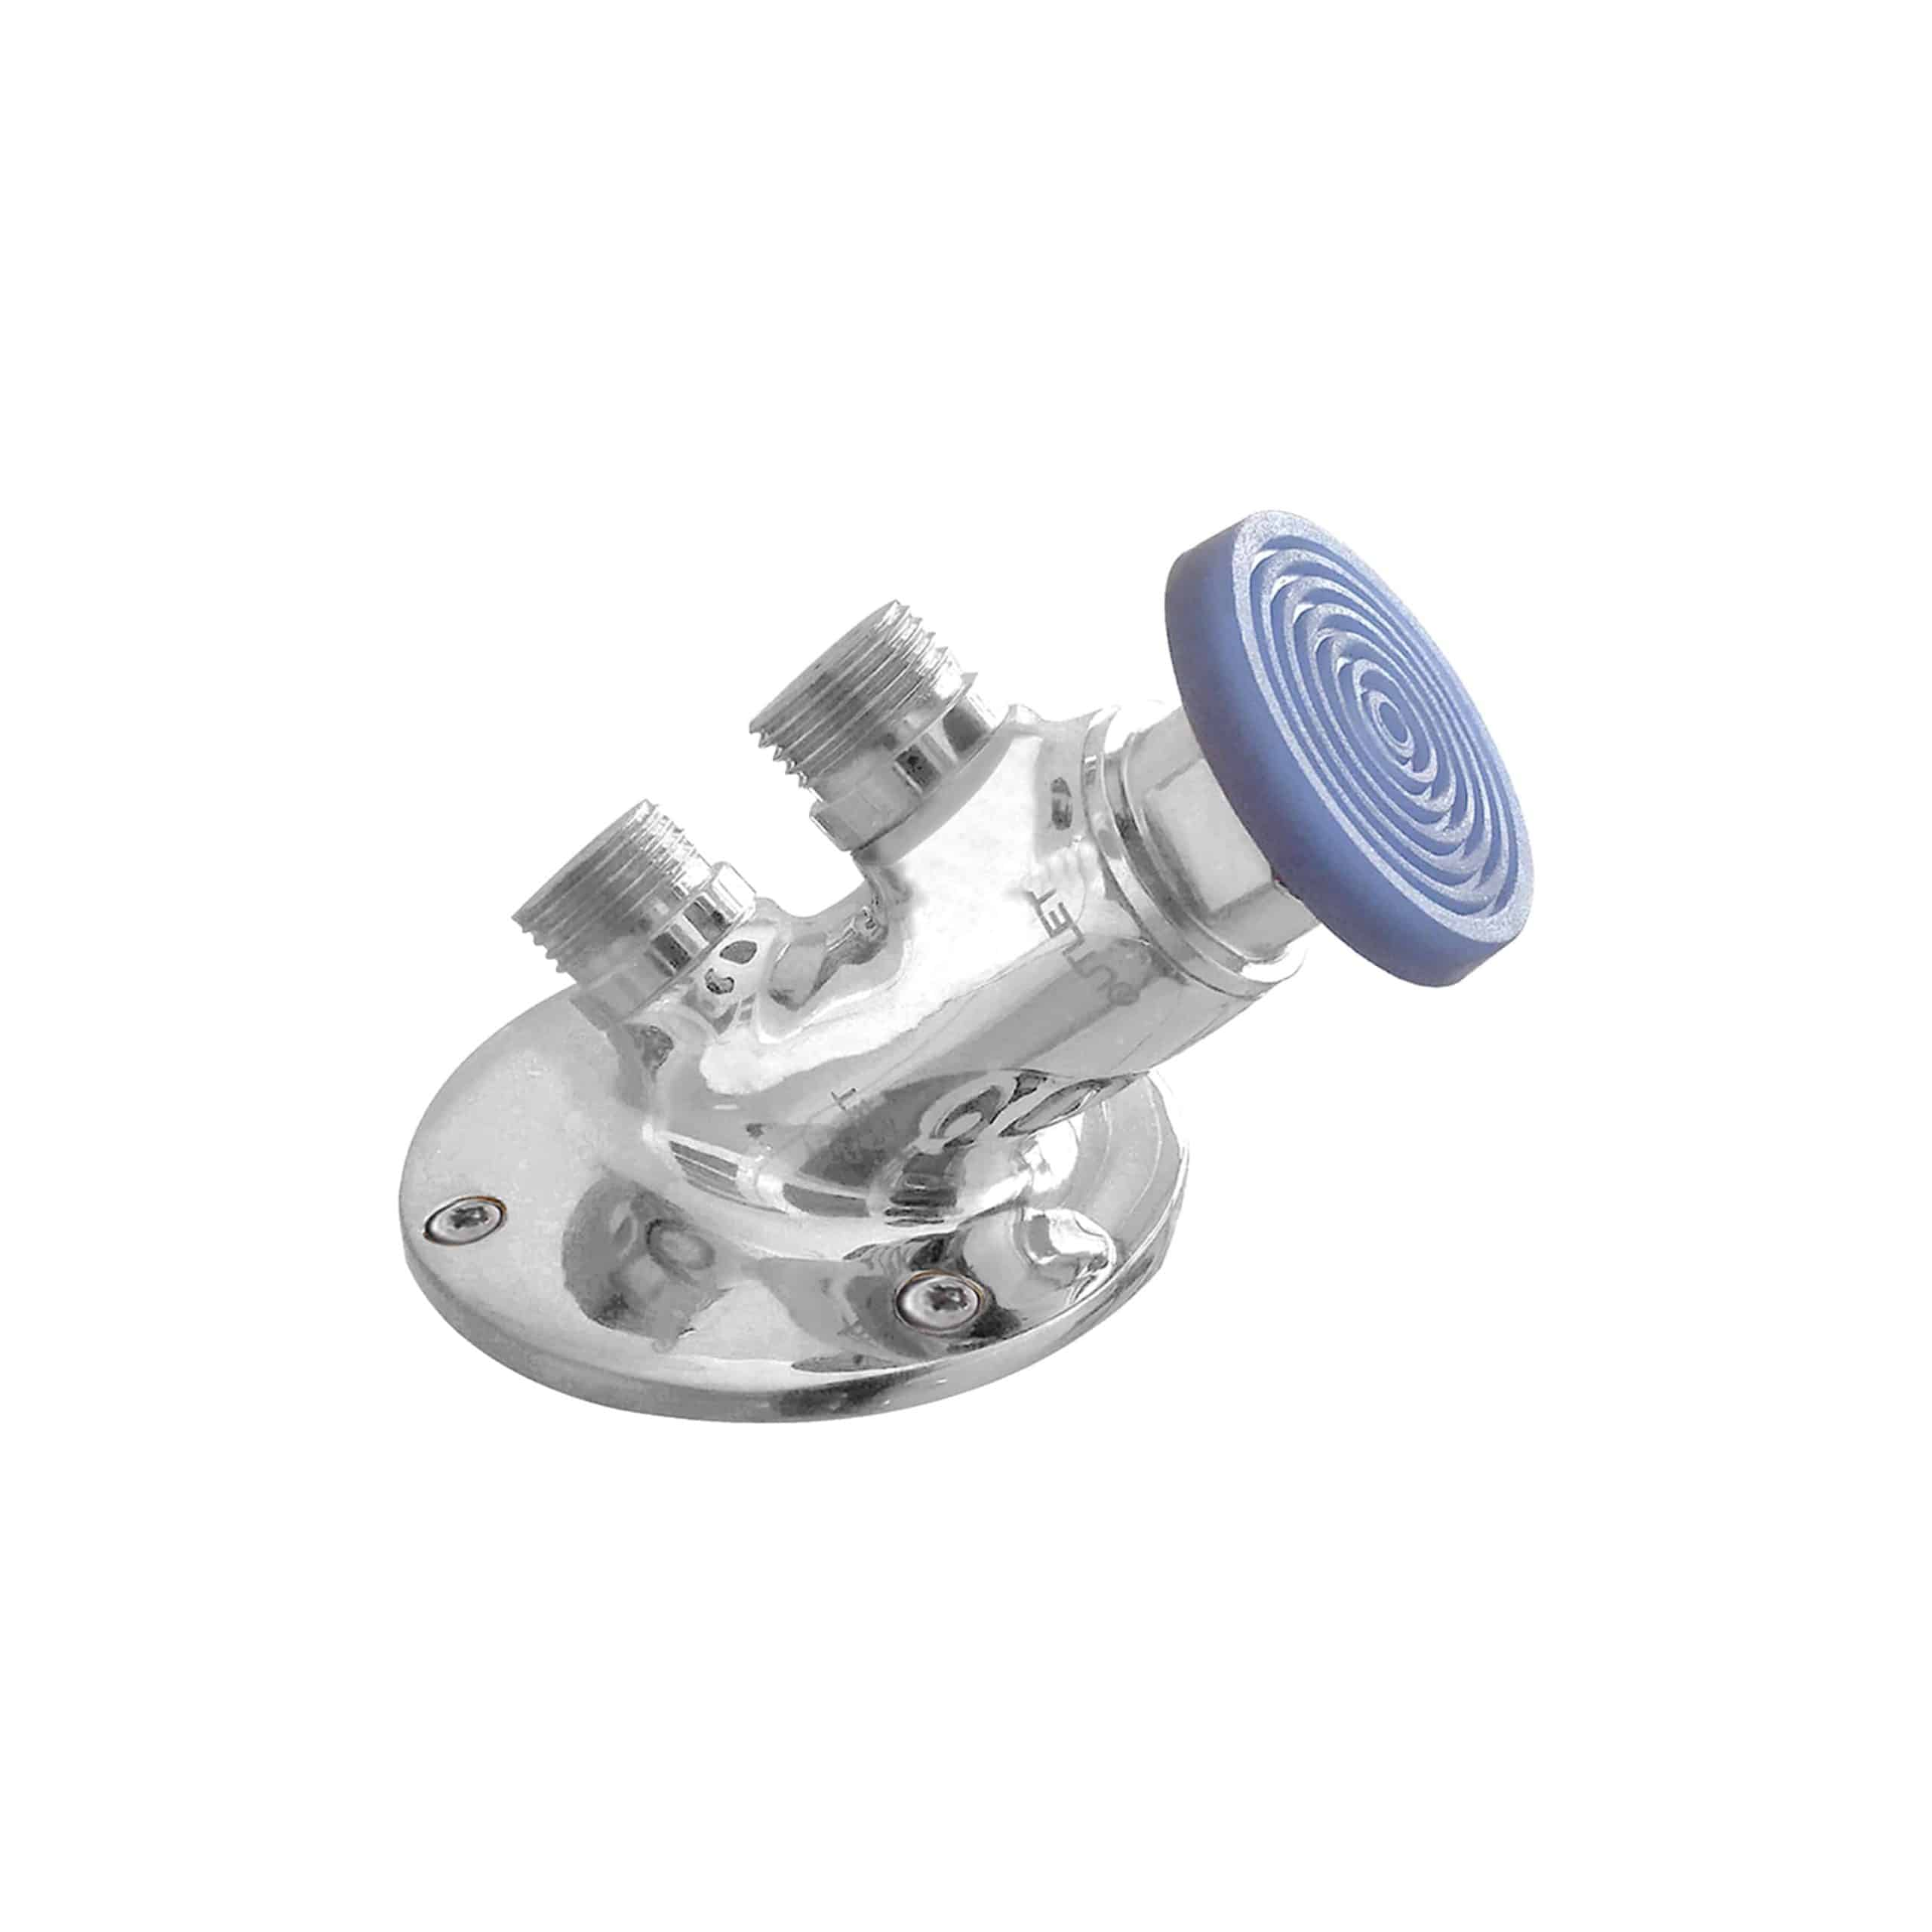 JAL FOOT-OPERATED VALVE